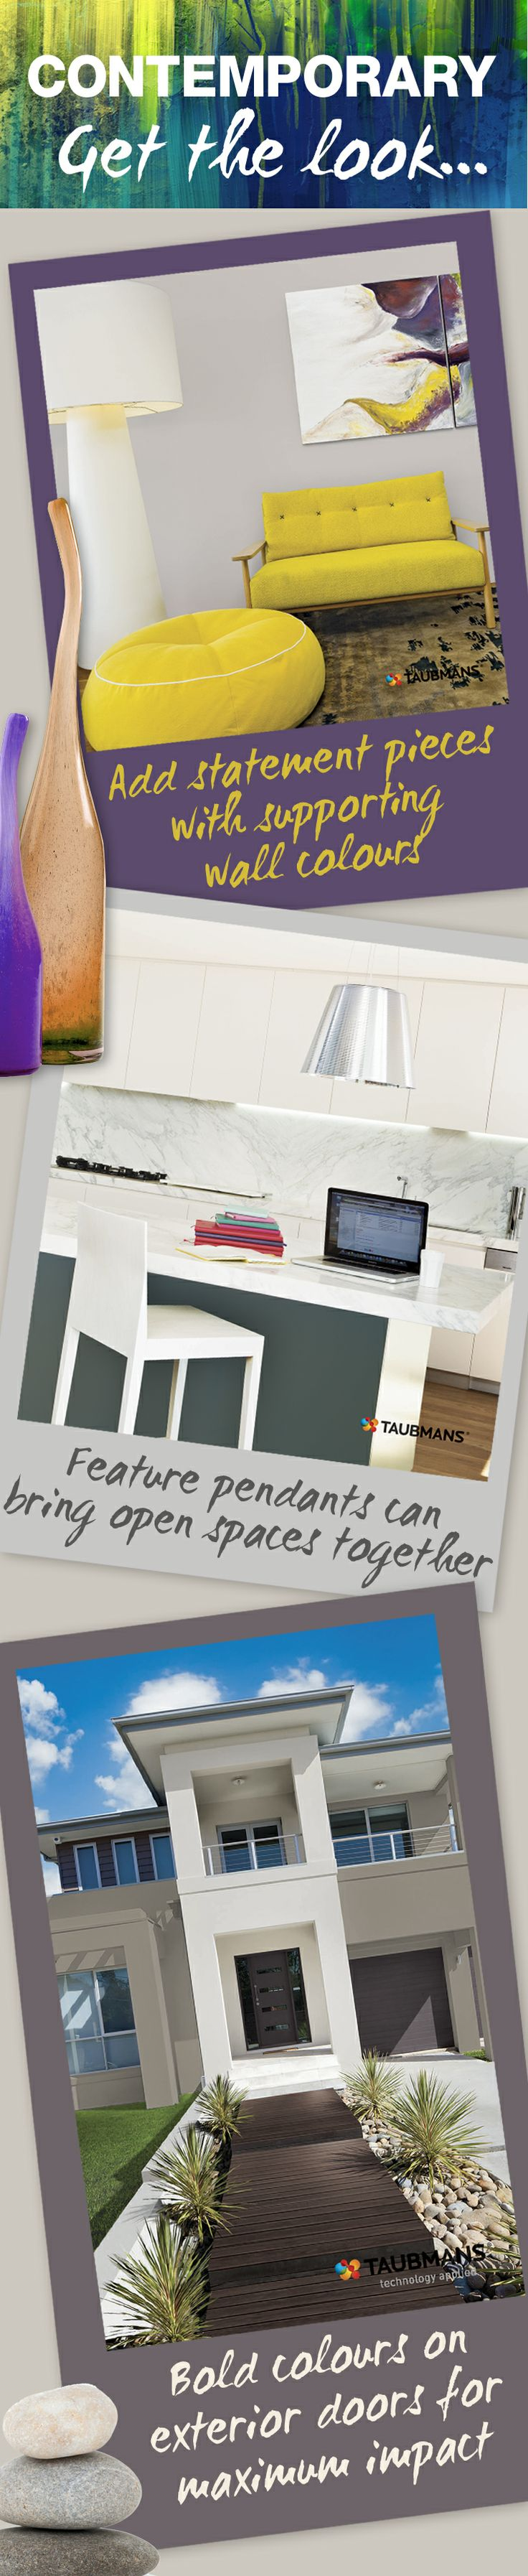 Bold colours, statement pieces and feature pendants will give your home a contemporary feel. #Paint #Taubmans